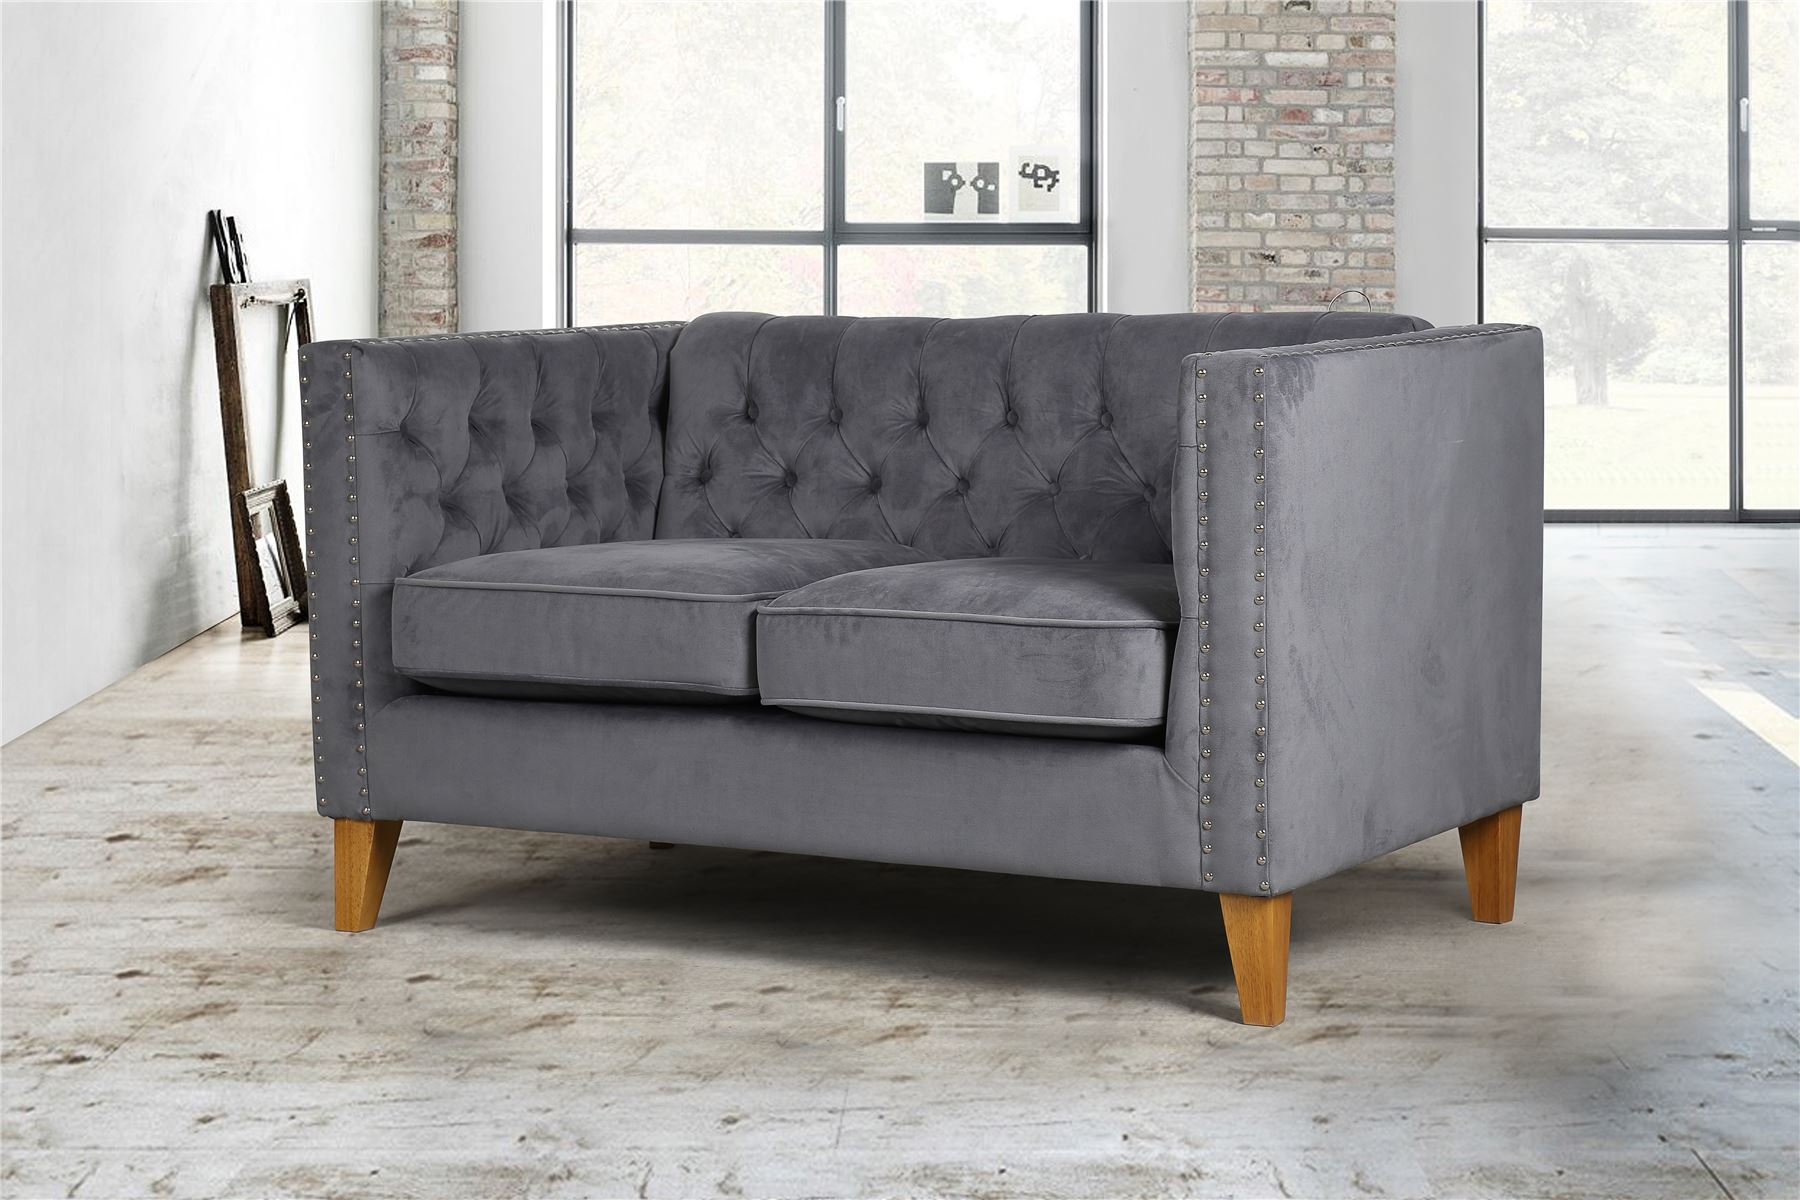 Birlea Florence Grey Velvet Medium Sofa Chair Button Back Love Seat